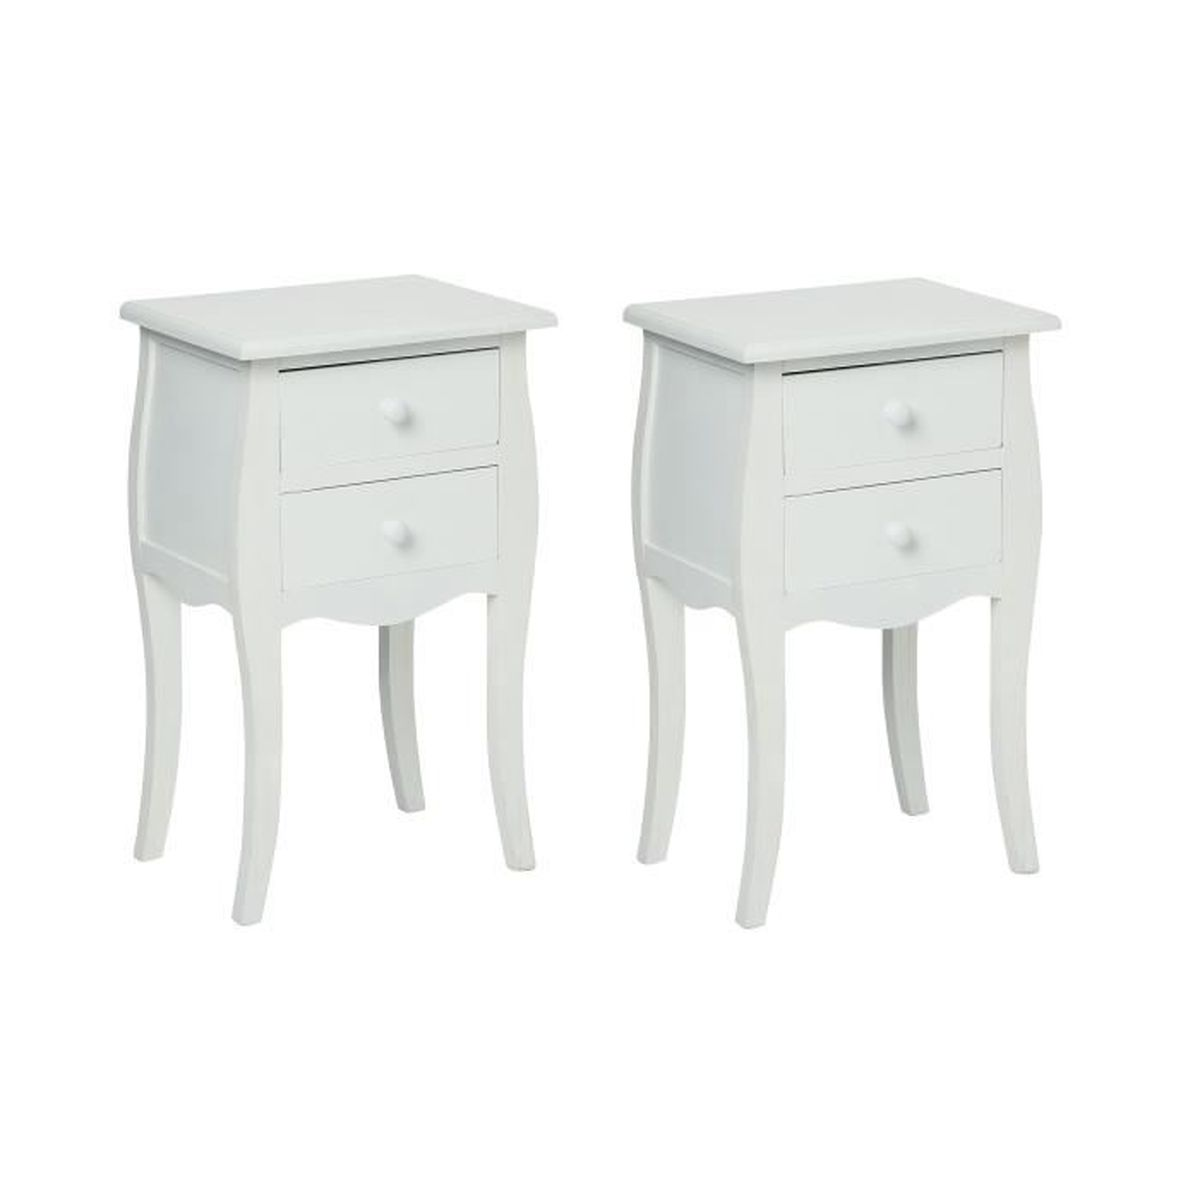 Table de chevet 2t blanc achat vente commode de for Table de chevet bebe